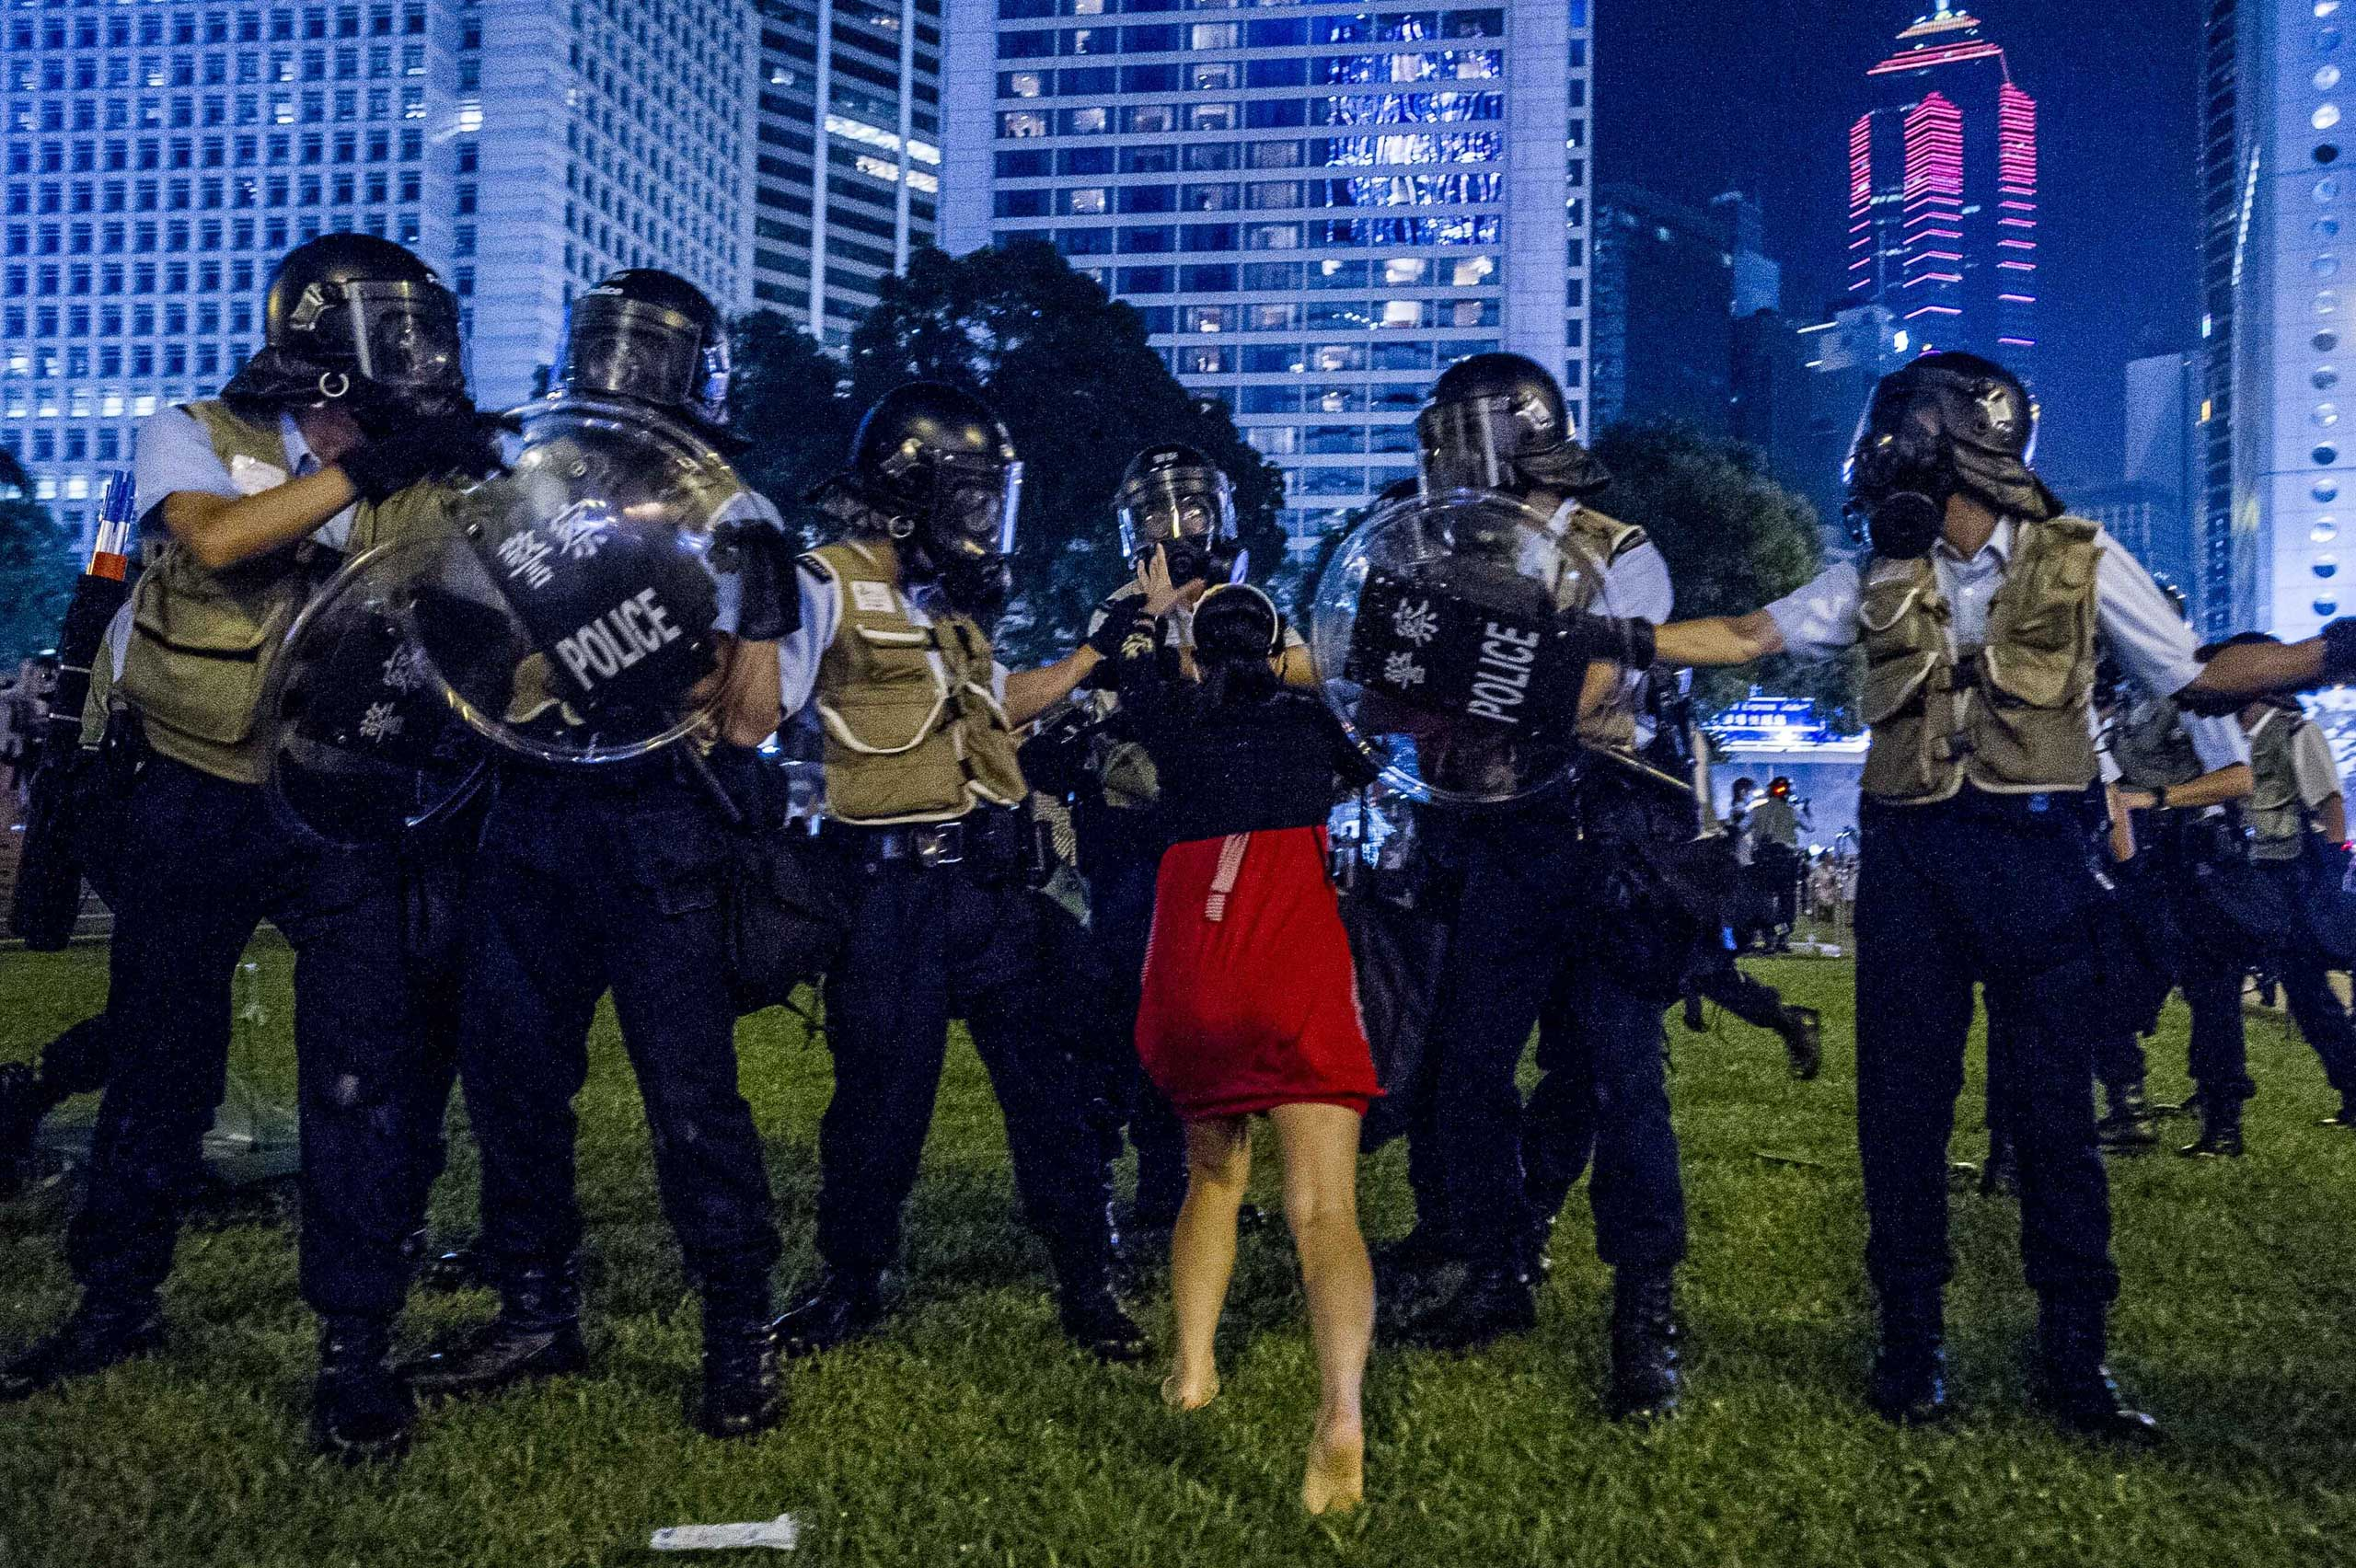 A pro-democracy protester confronts the police during a demonstration in Hong Kong on Sept. 28, 2014.